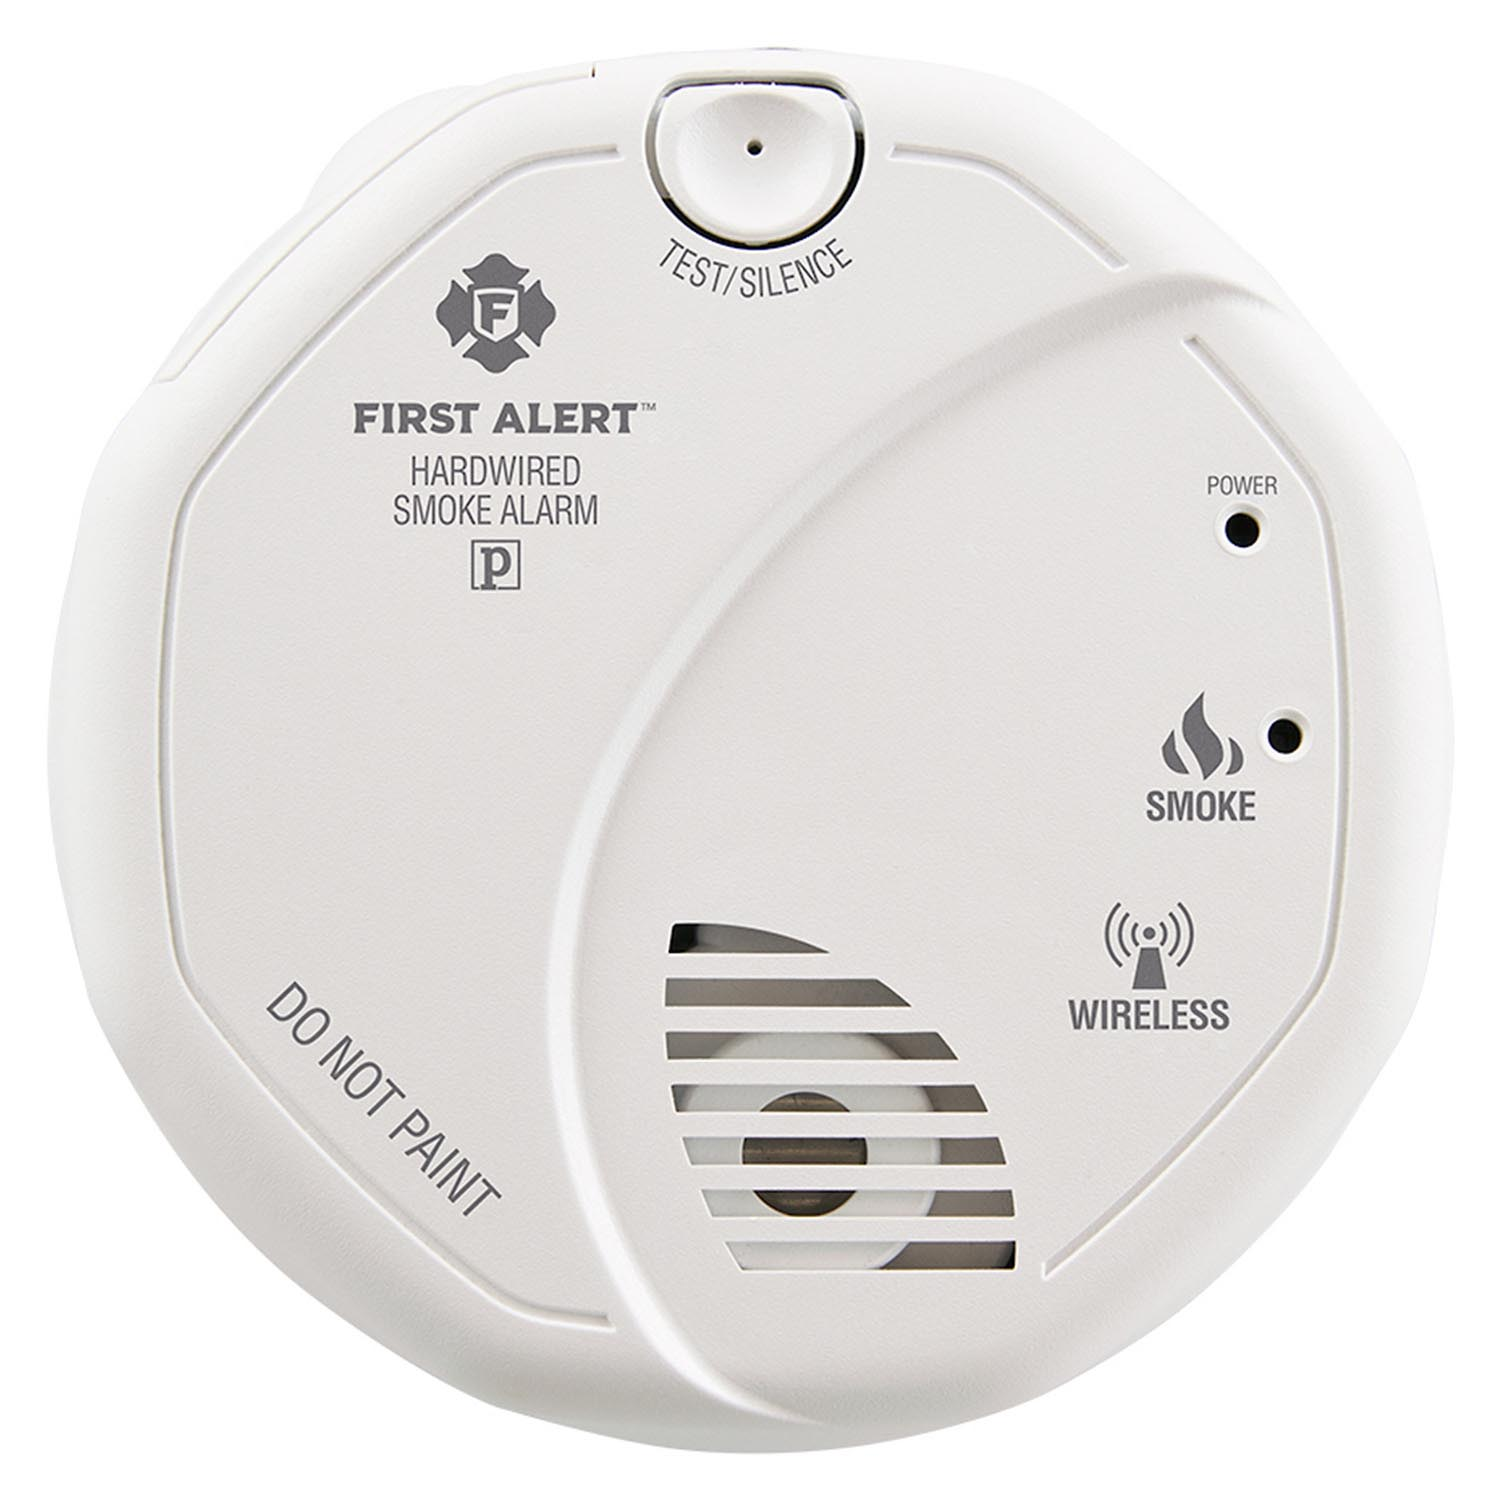 hight resolution of first alert wireless interconnect hardwired smoke alarm sa521cn 3st 1039830